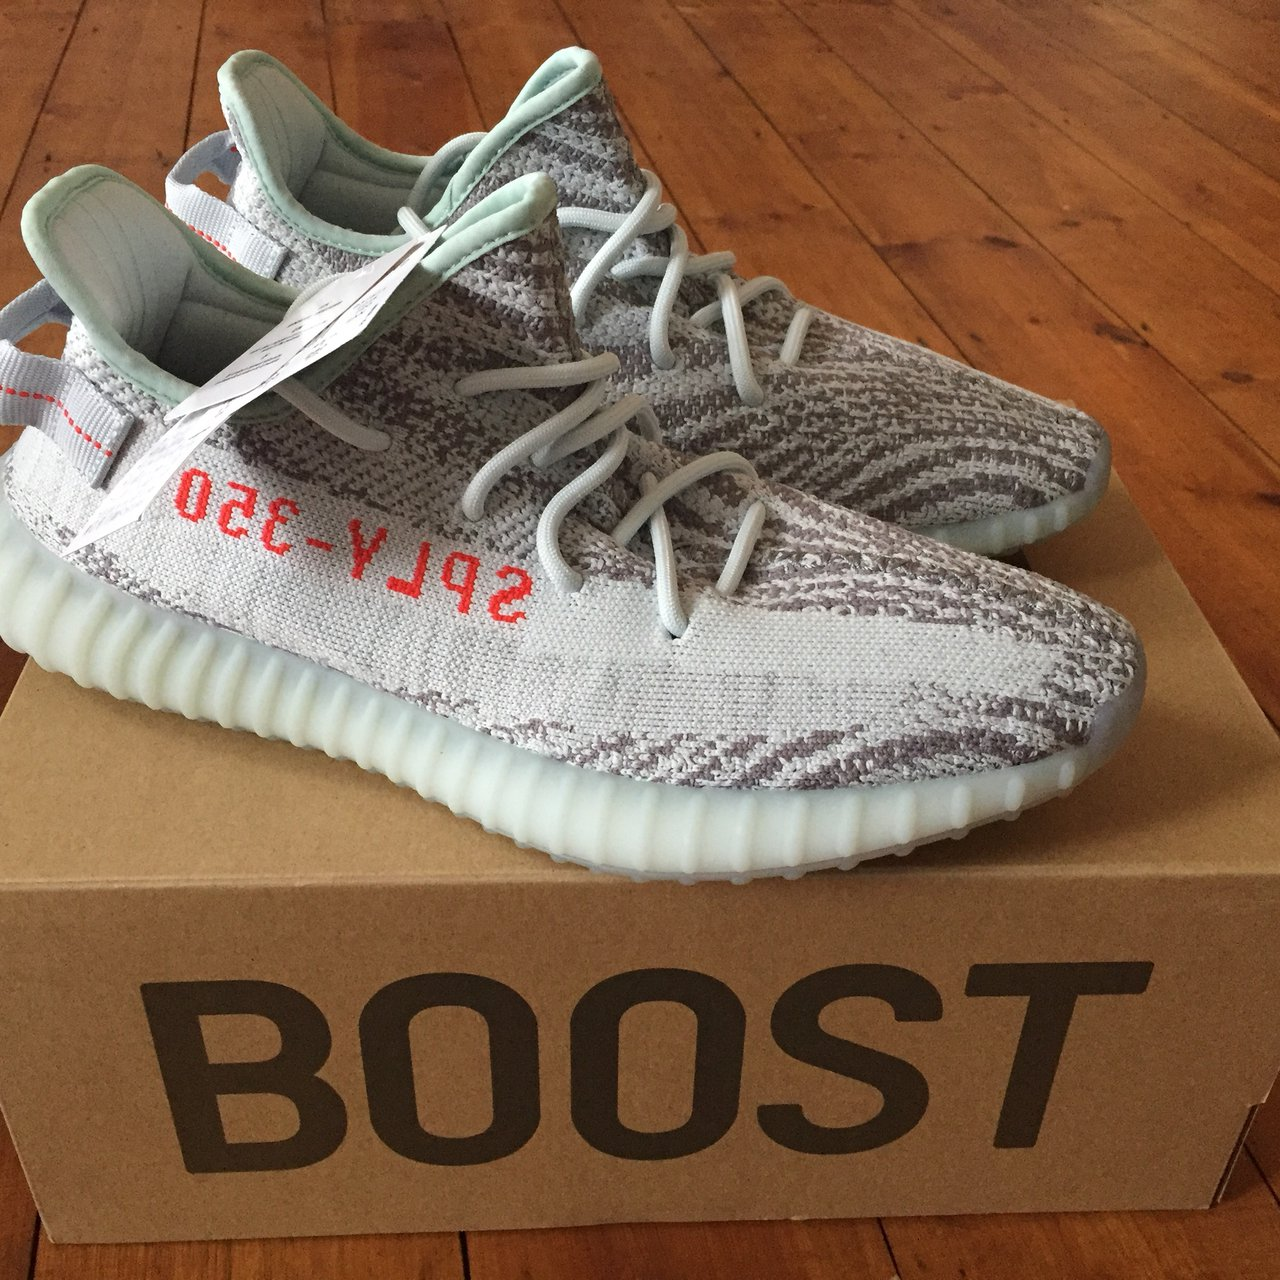 Last pair of Adidas Yeezy Boost 350 V2 Blue Tint Deadstock - Depop 0919835d5